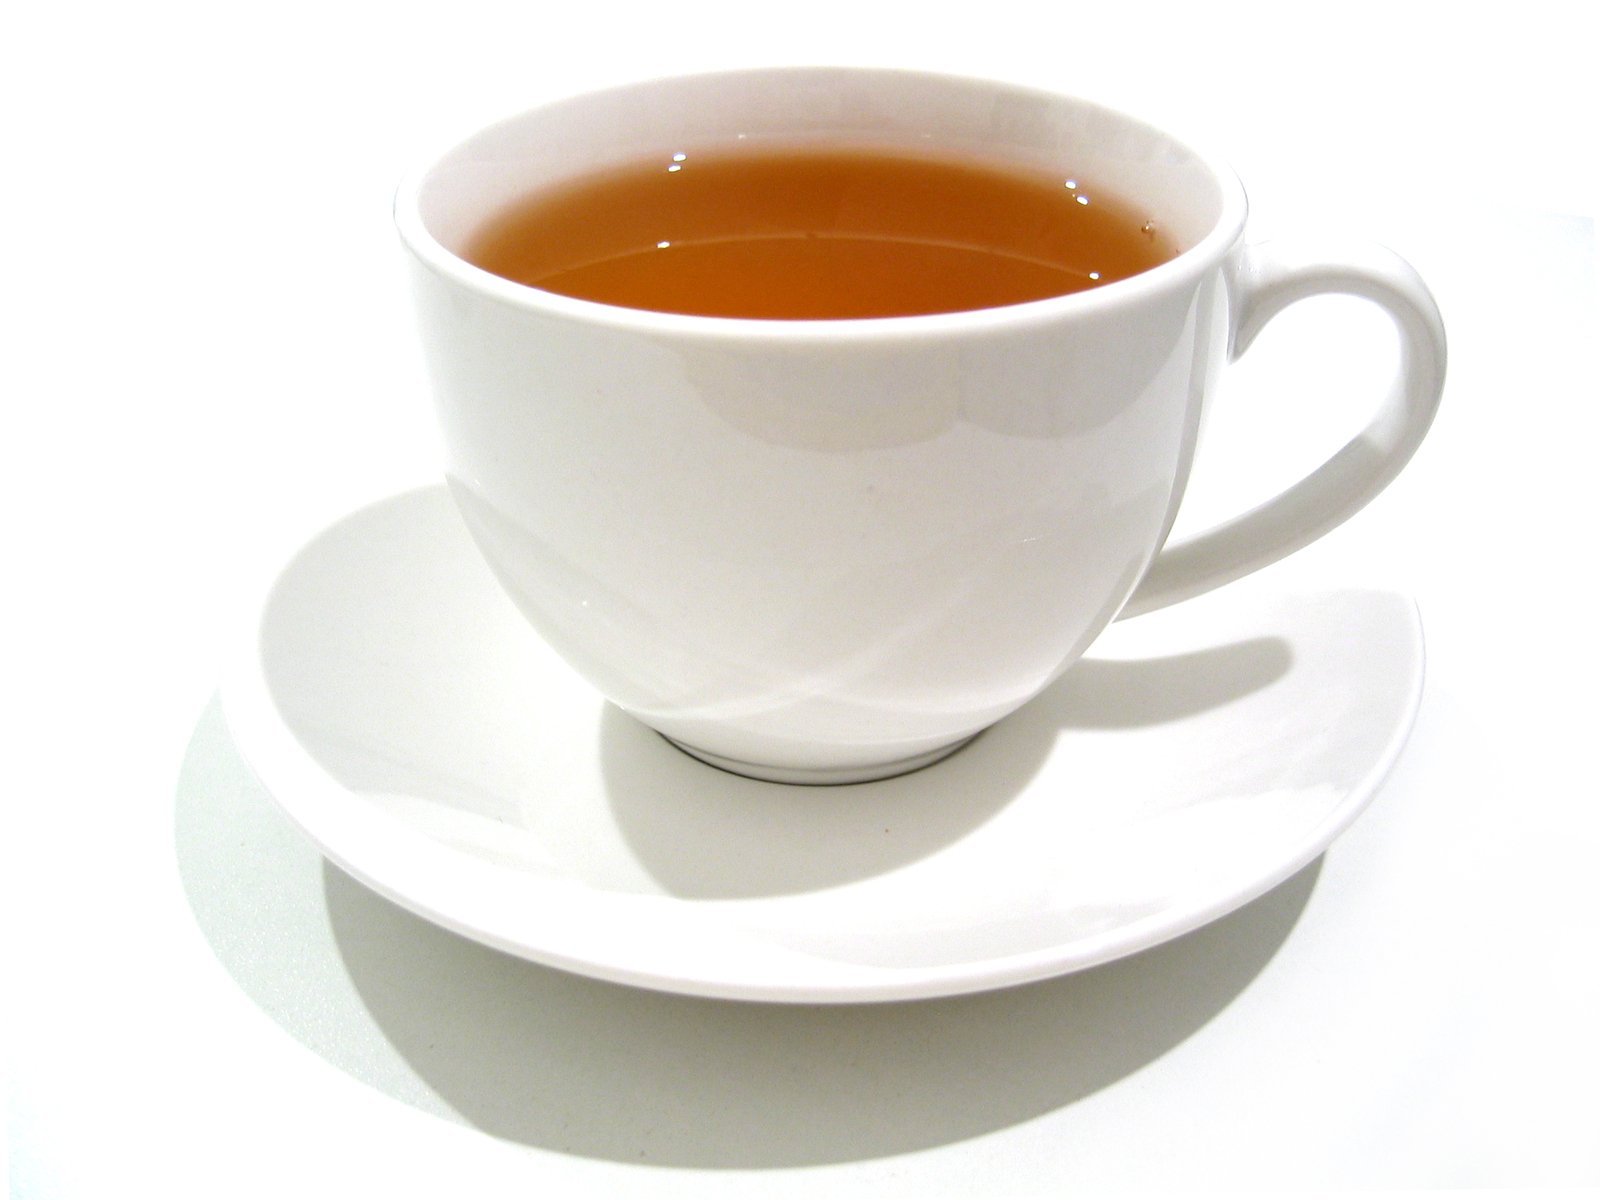 a cup of tea in a white cup with saucer